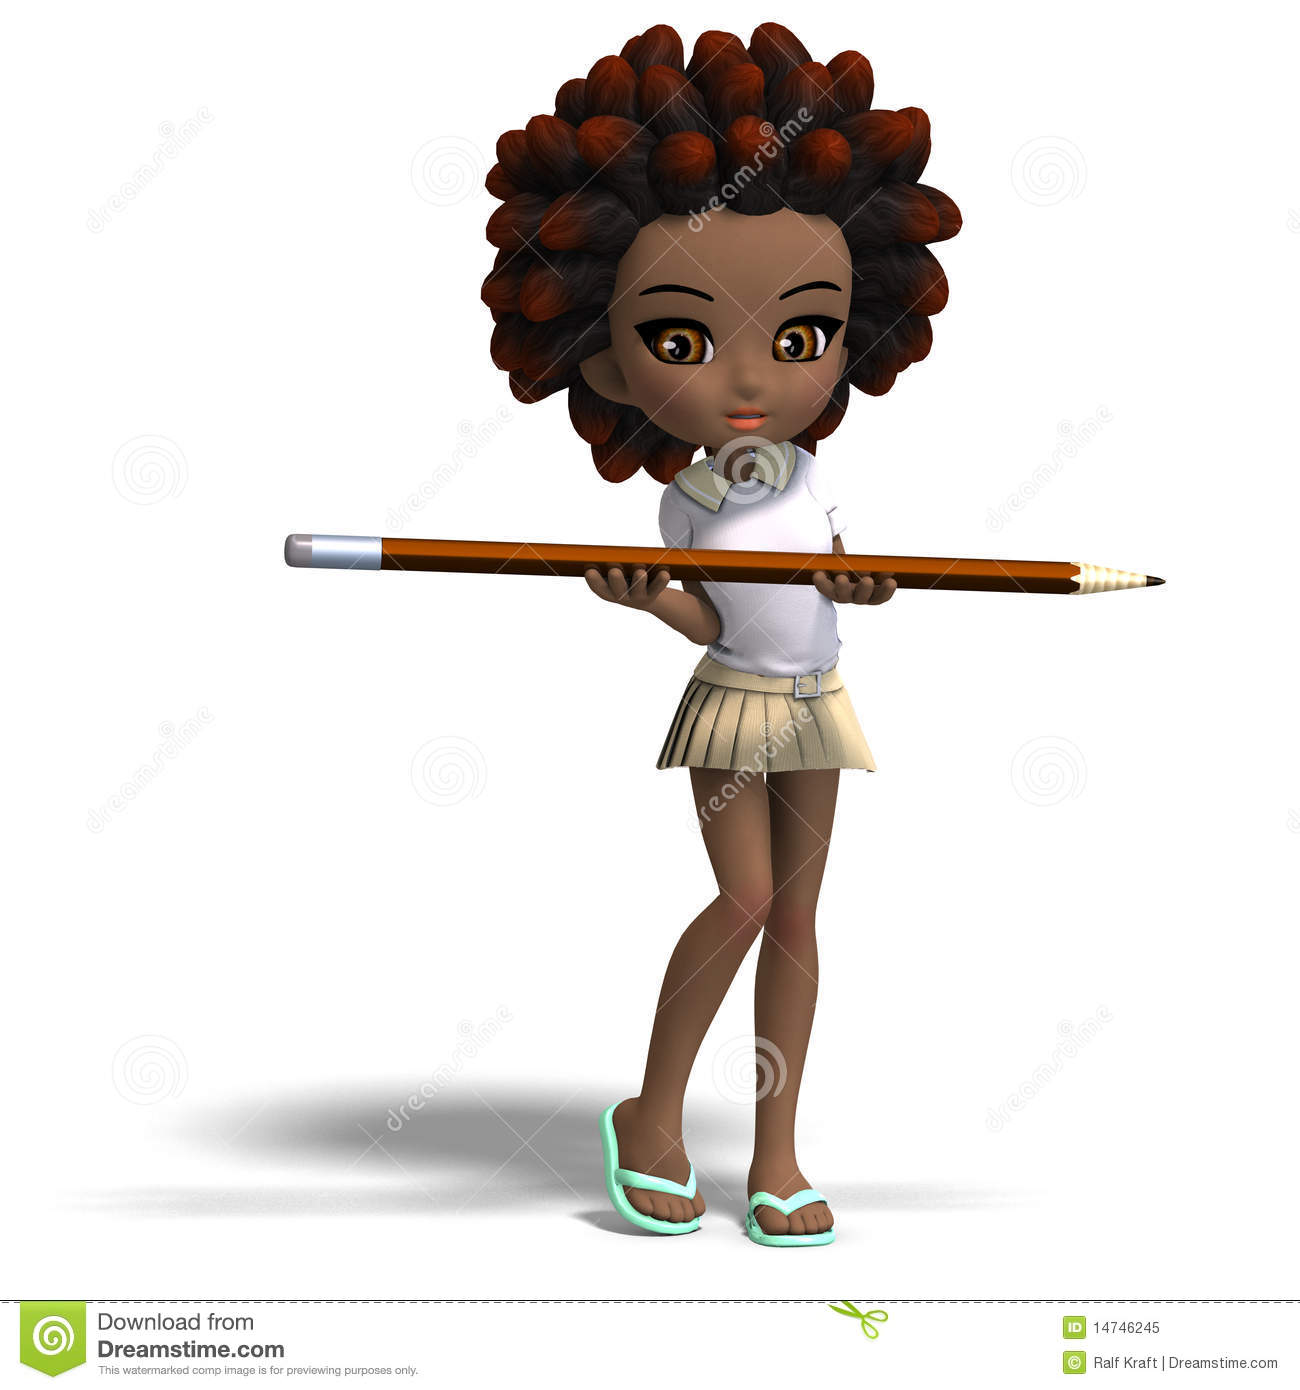 Cute Little Cartoon School Girl With Curly Hair. Royalty Free Stock ... Octopus Cartoon Images